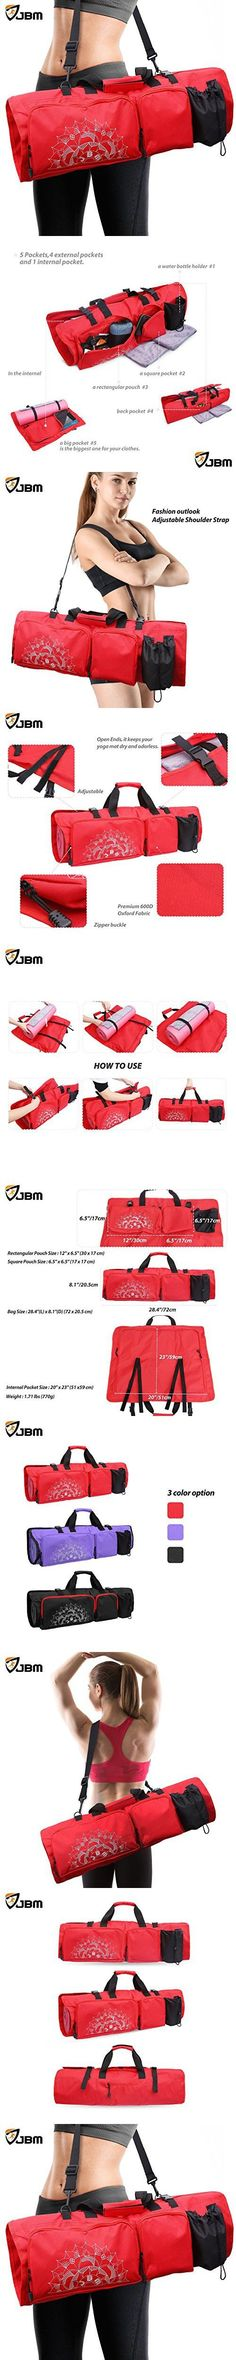 Asana Yoga Mat Bag Breathable Sports Bag with Adjustable Shoulder Straps